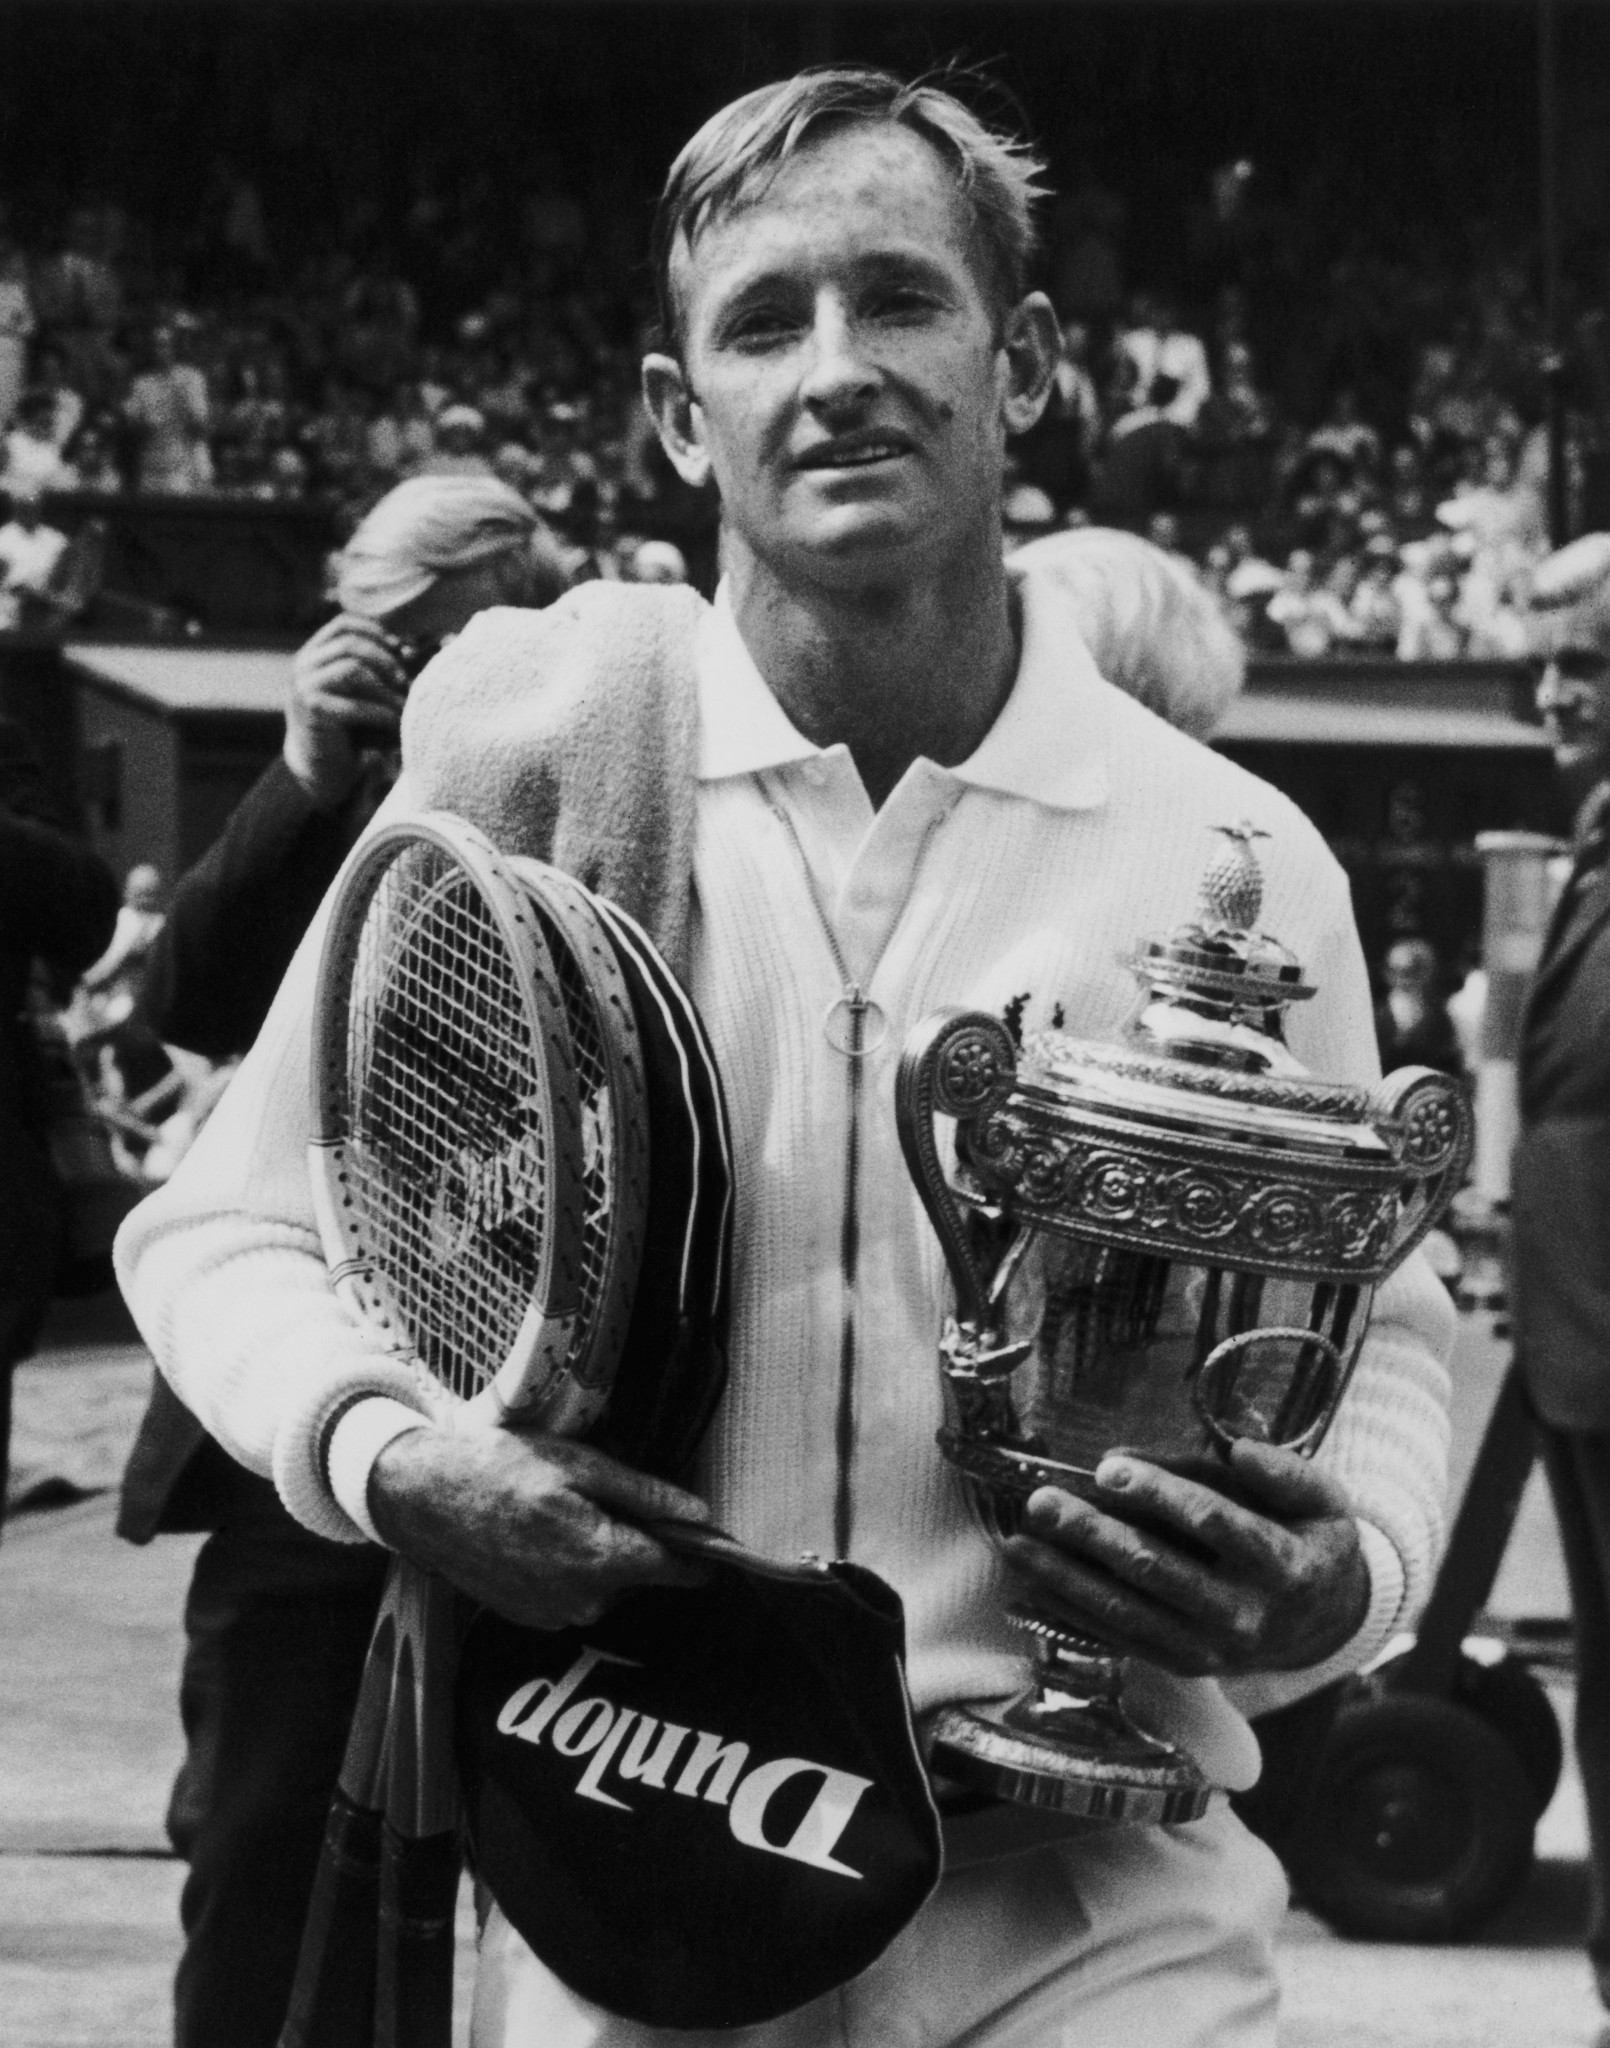 Rod Laver pictured with the men's trophy after the first Wimbledon final of the open era in 1968, and six years after winning his first title there ©Getty Images